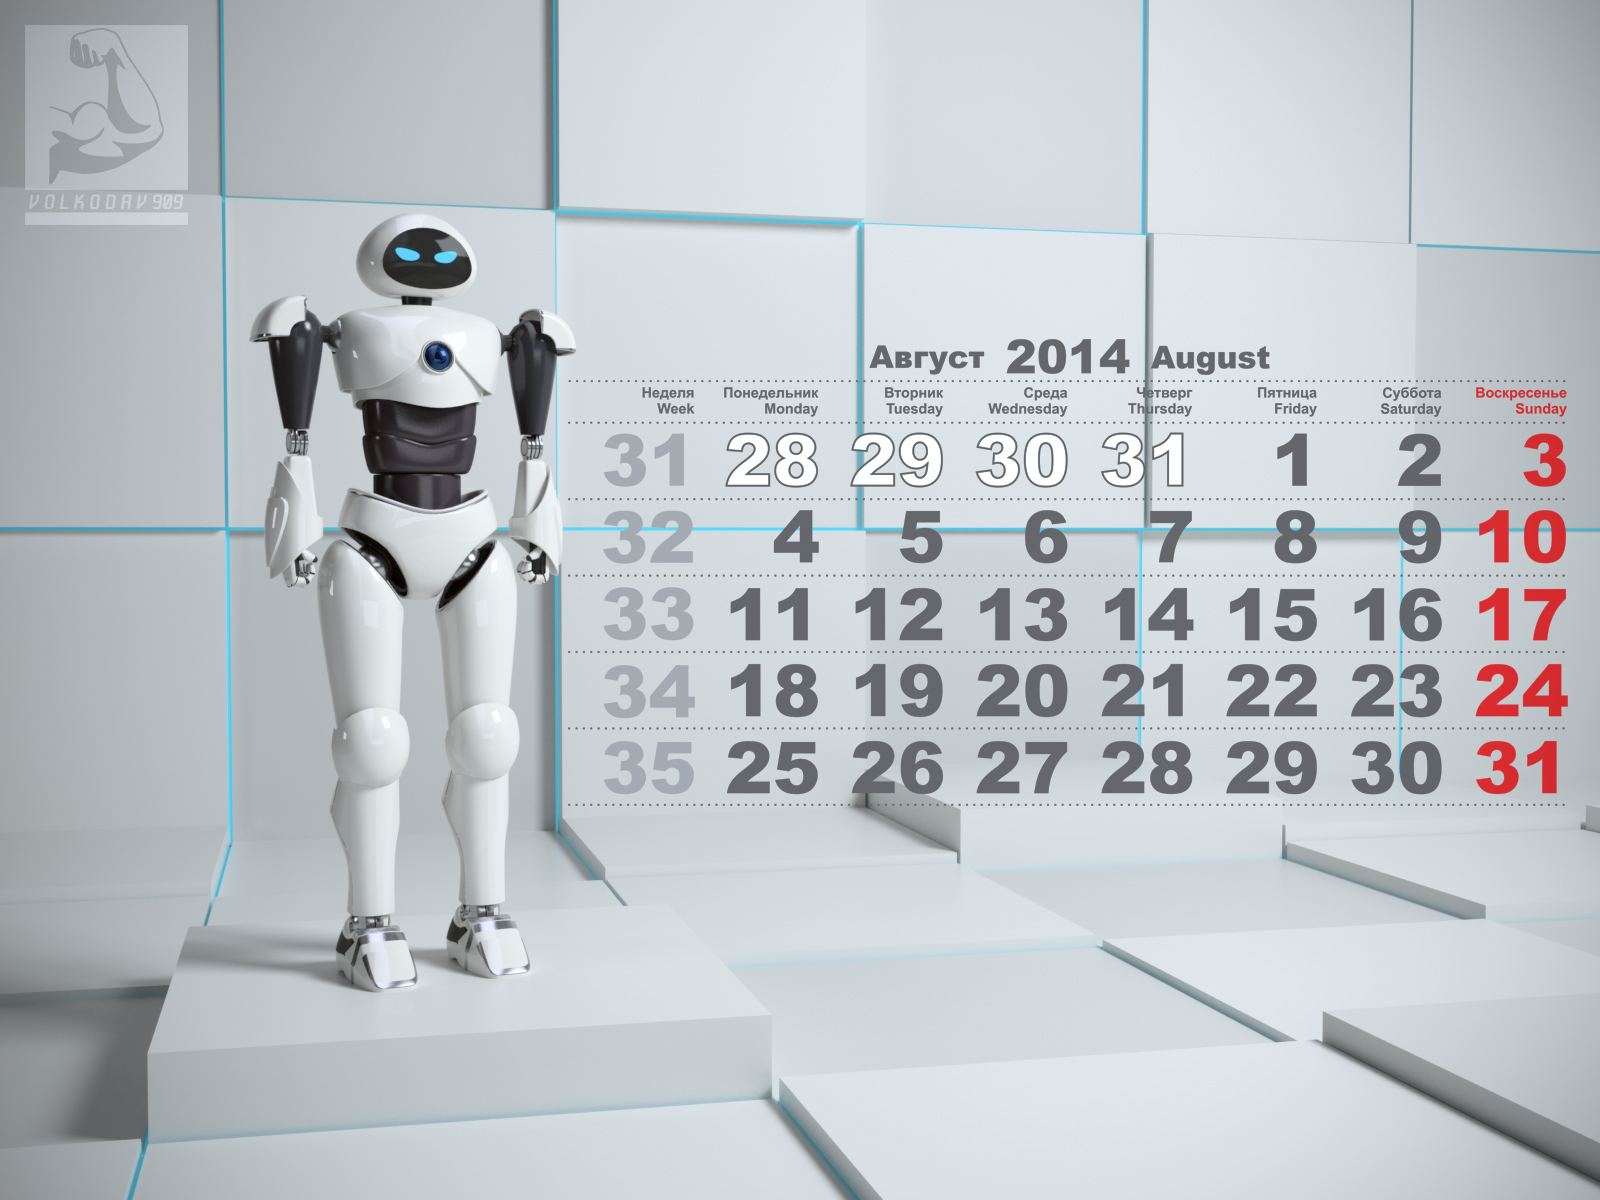 August. Eva the robot 3D model